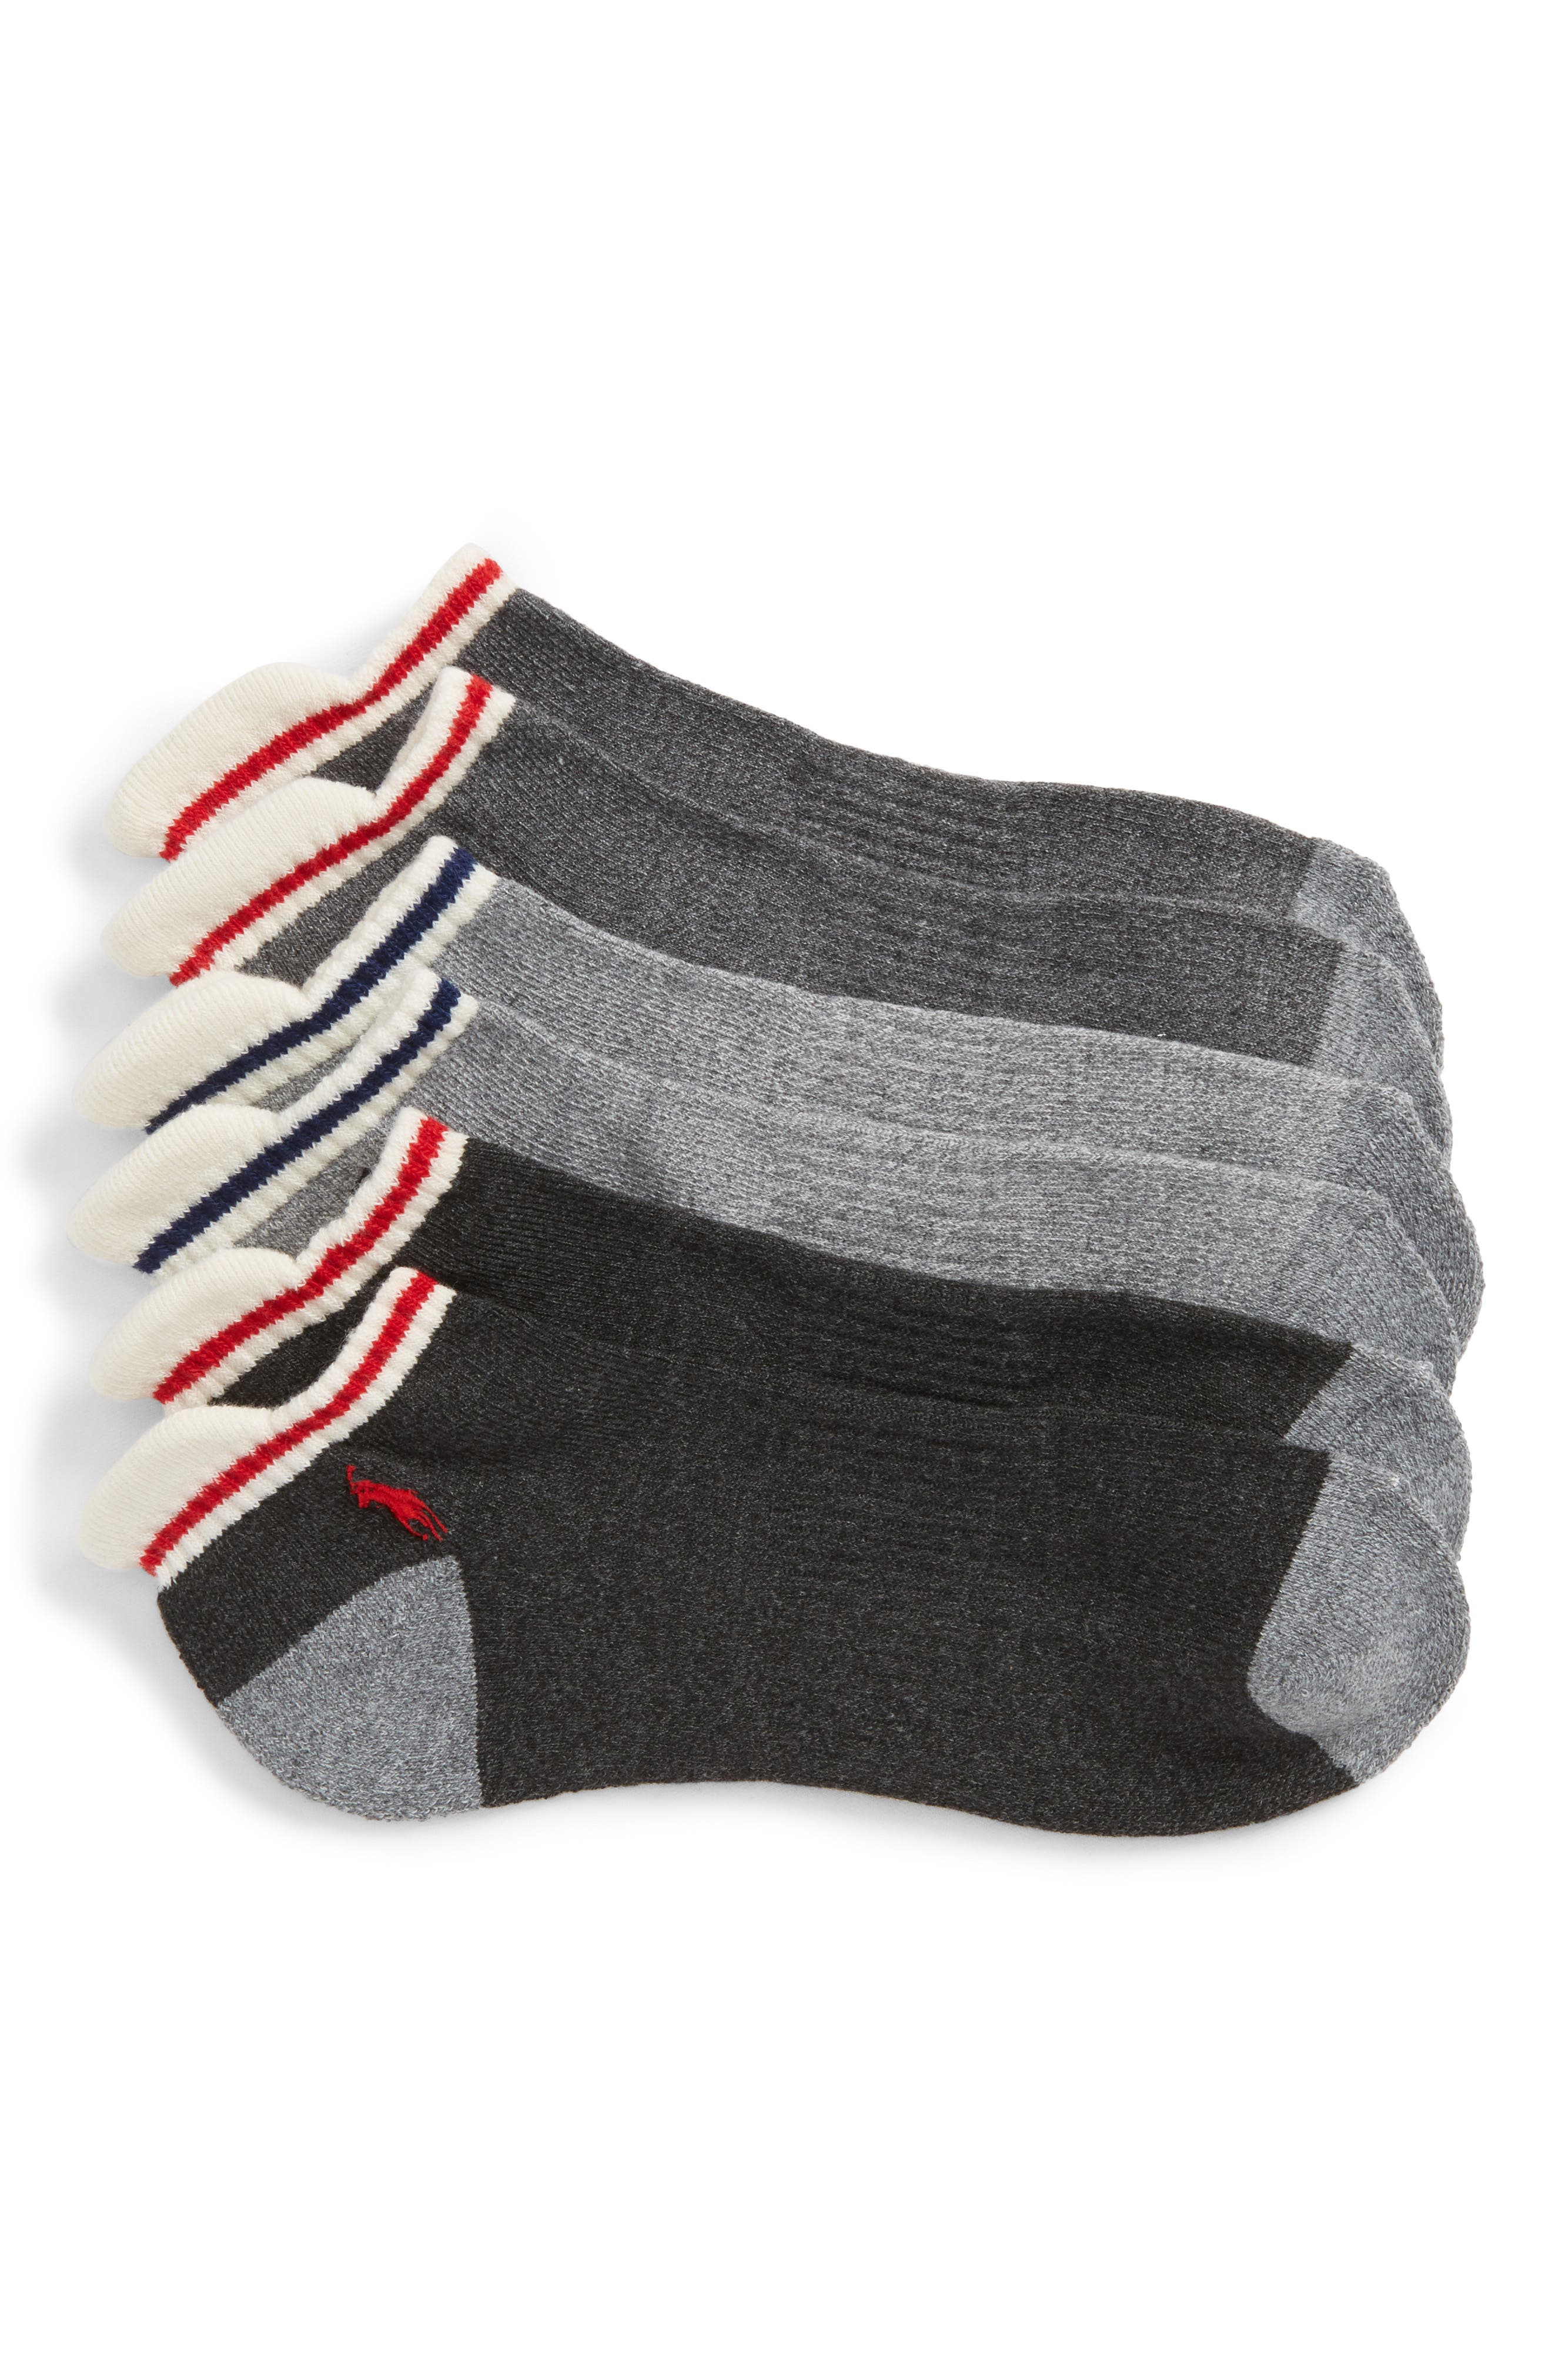 3-Pack Low Cut Socks,                         Main,                         color, Grey Heather/ Assorted